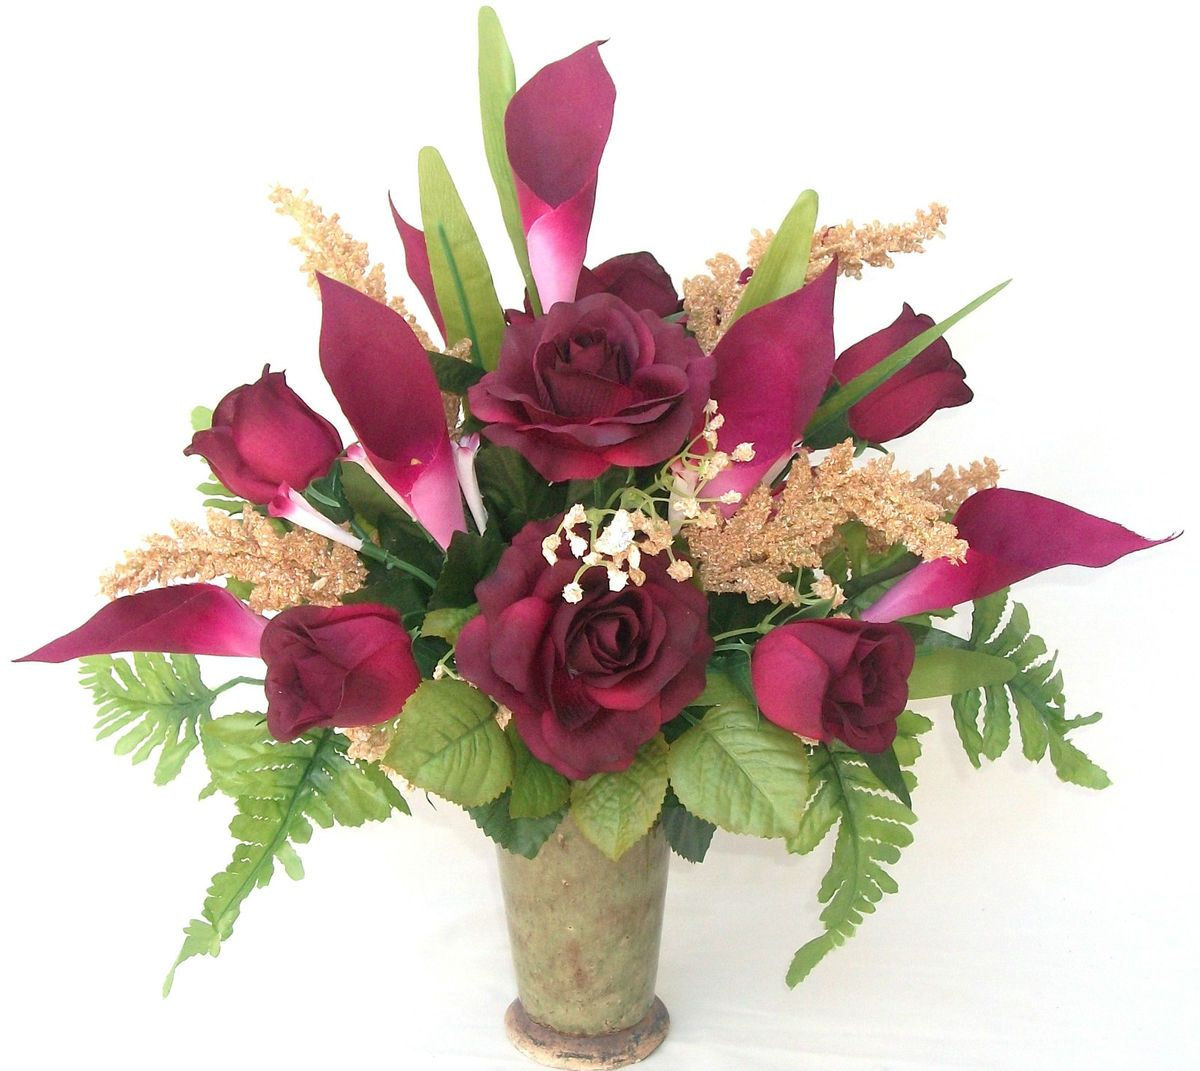 Utility Sheds Near Me further Best Site To Buy Used Cars From Private Sellers further Best Way To Sell Your Car For Free likewise 13017302 moreover Callalily Flower Arrangement. on car seat stroller combo prices